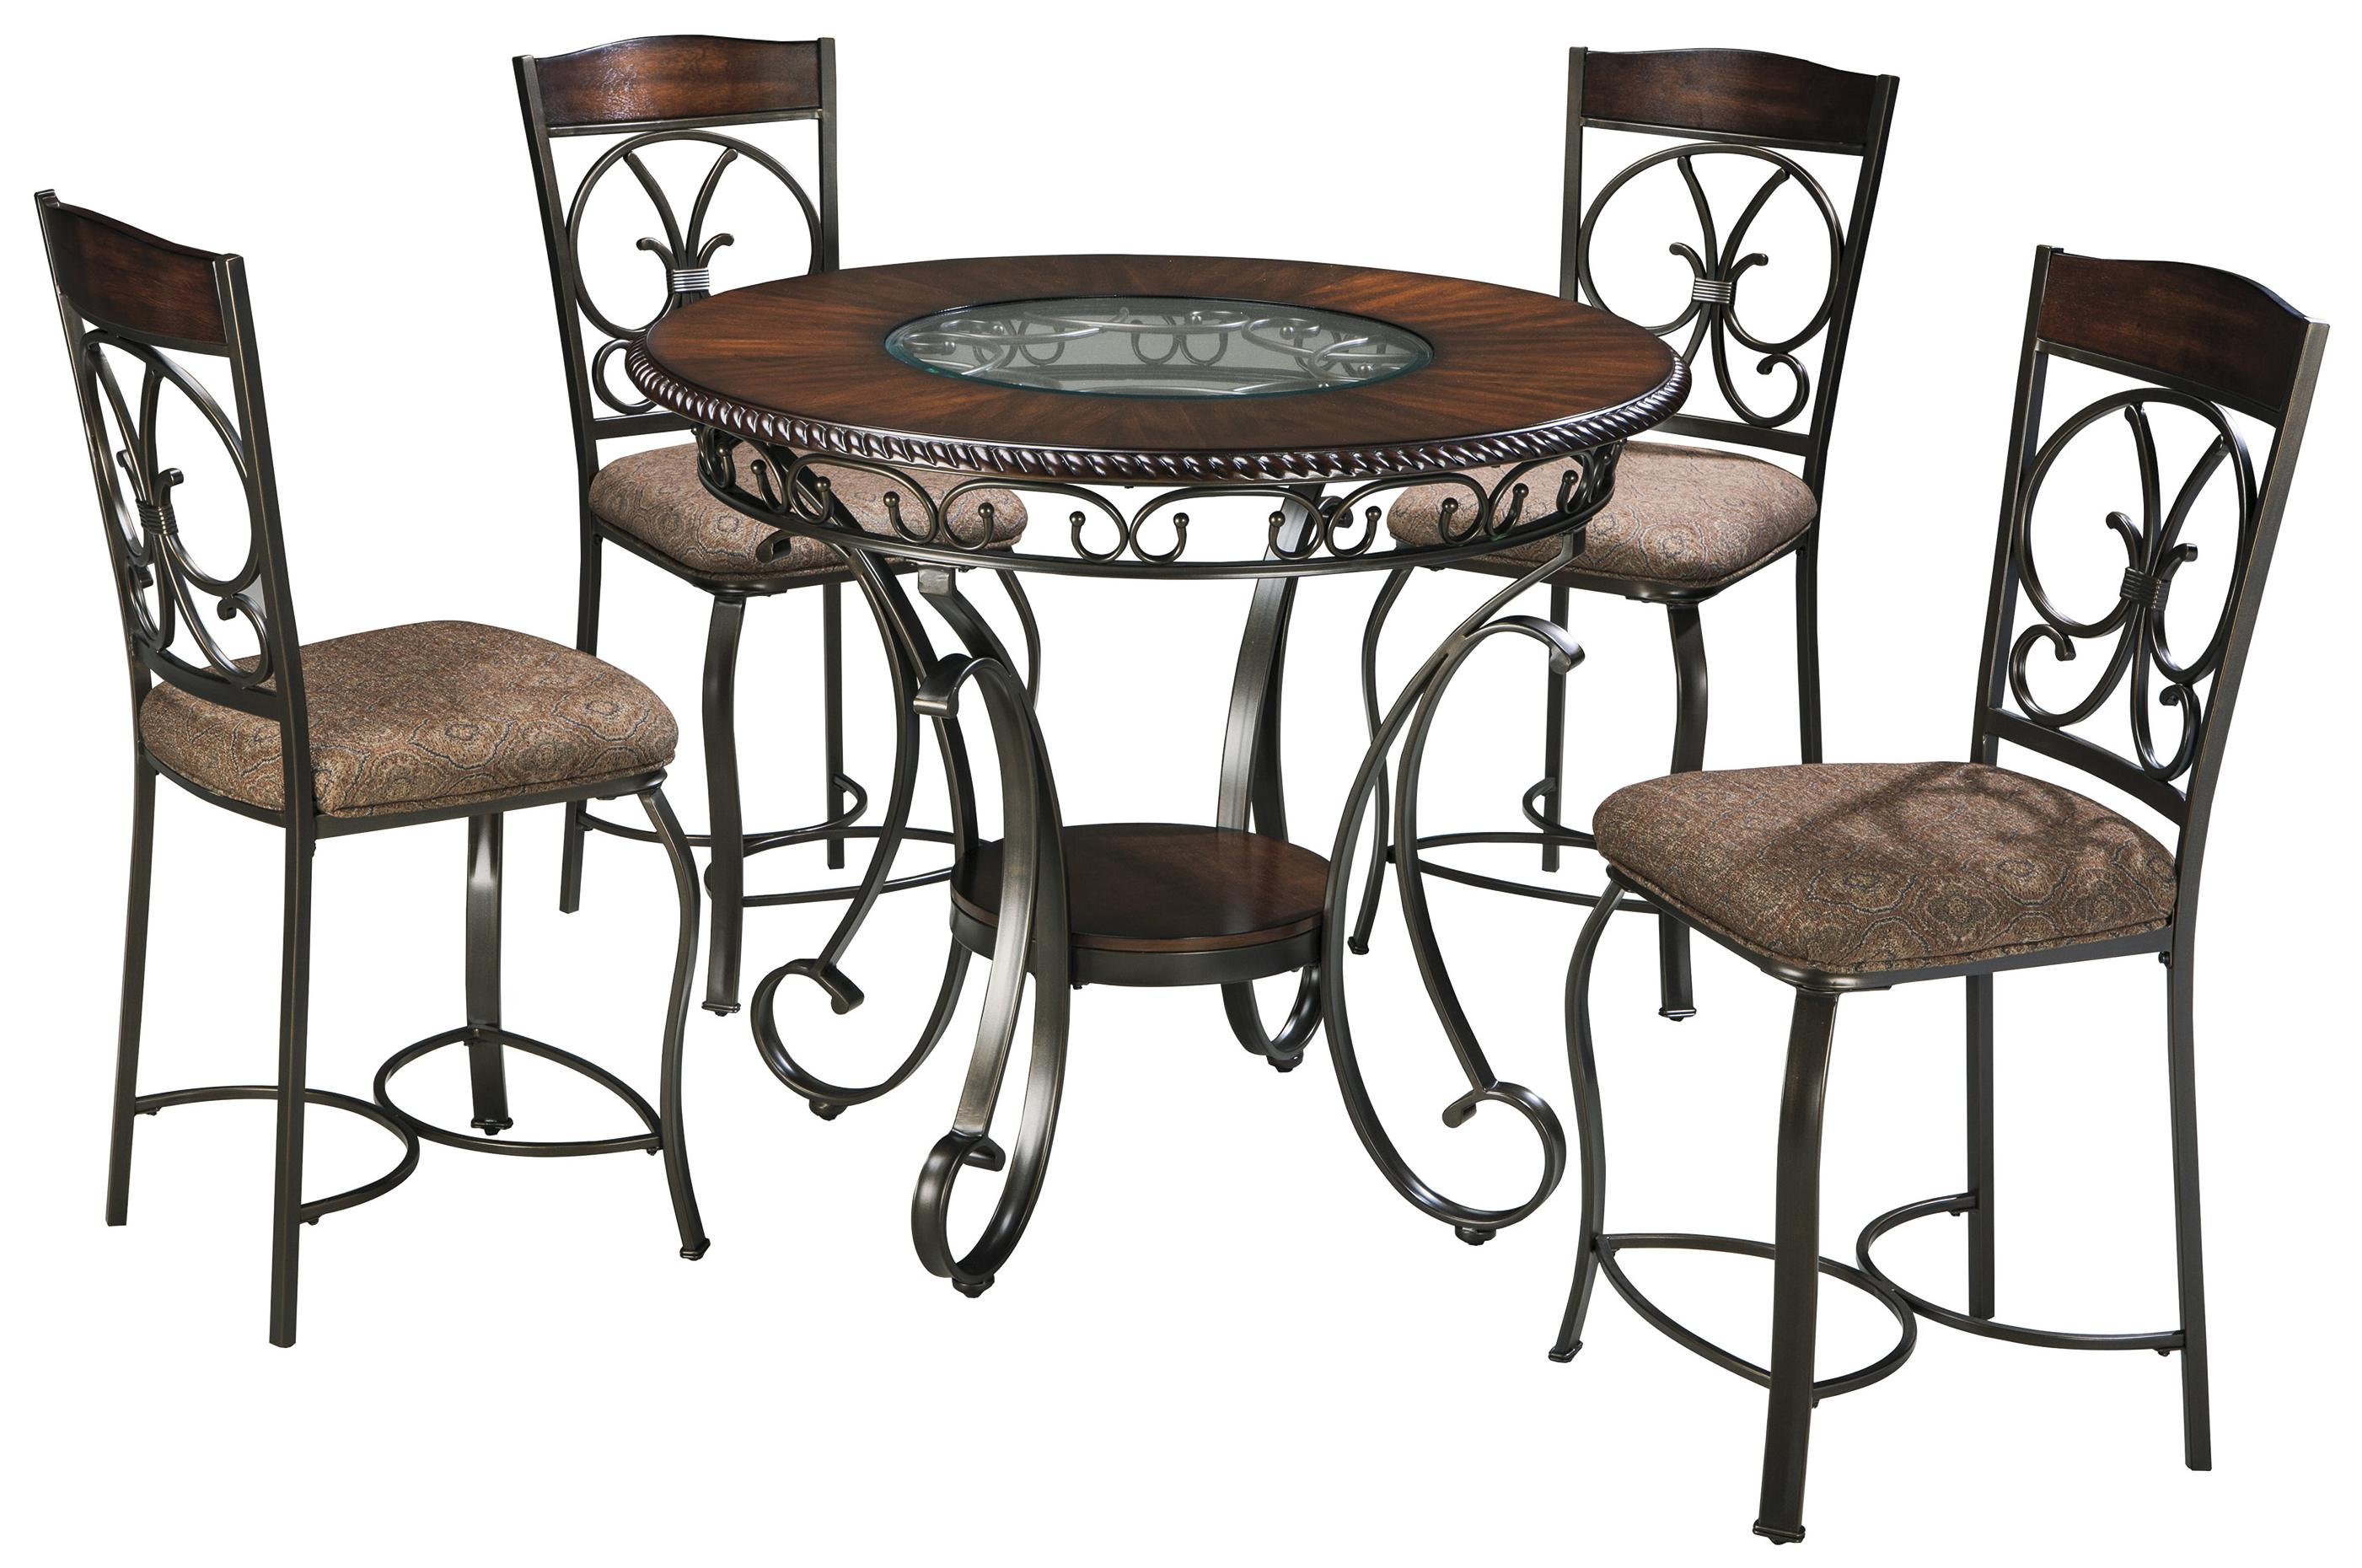 Round Counter Table And 4 Barstool Set With Metal Accents By Signature Design By Ashley Wolf